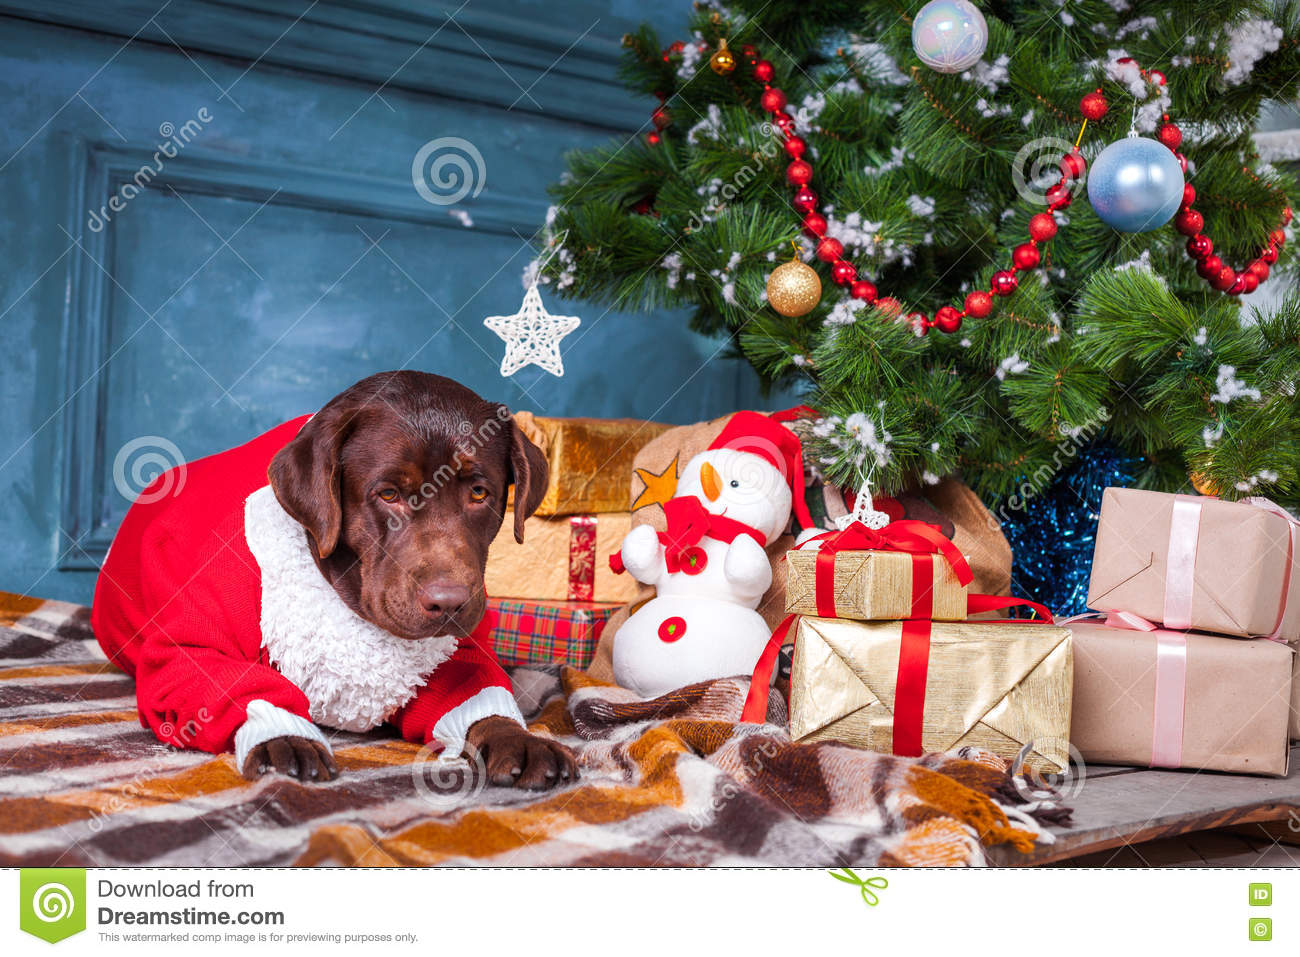 download the black labrador retriever sitting with gifts on christmas decorations background stock image image - Black Lab Christmas Decor